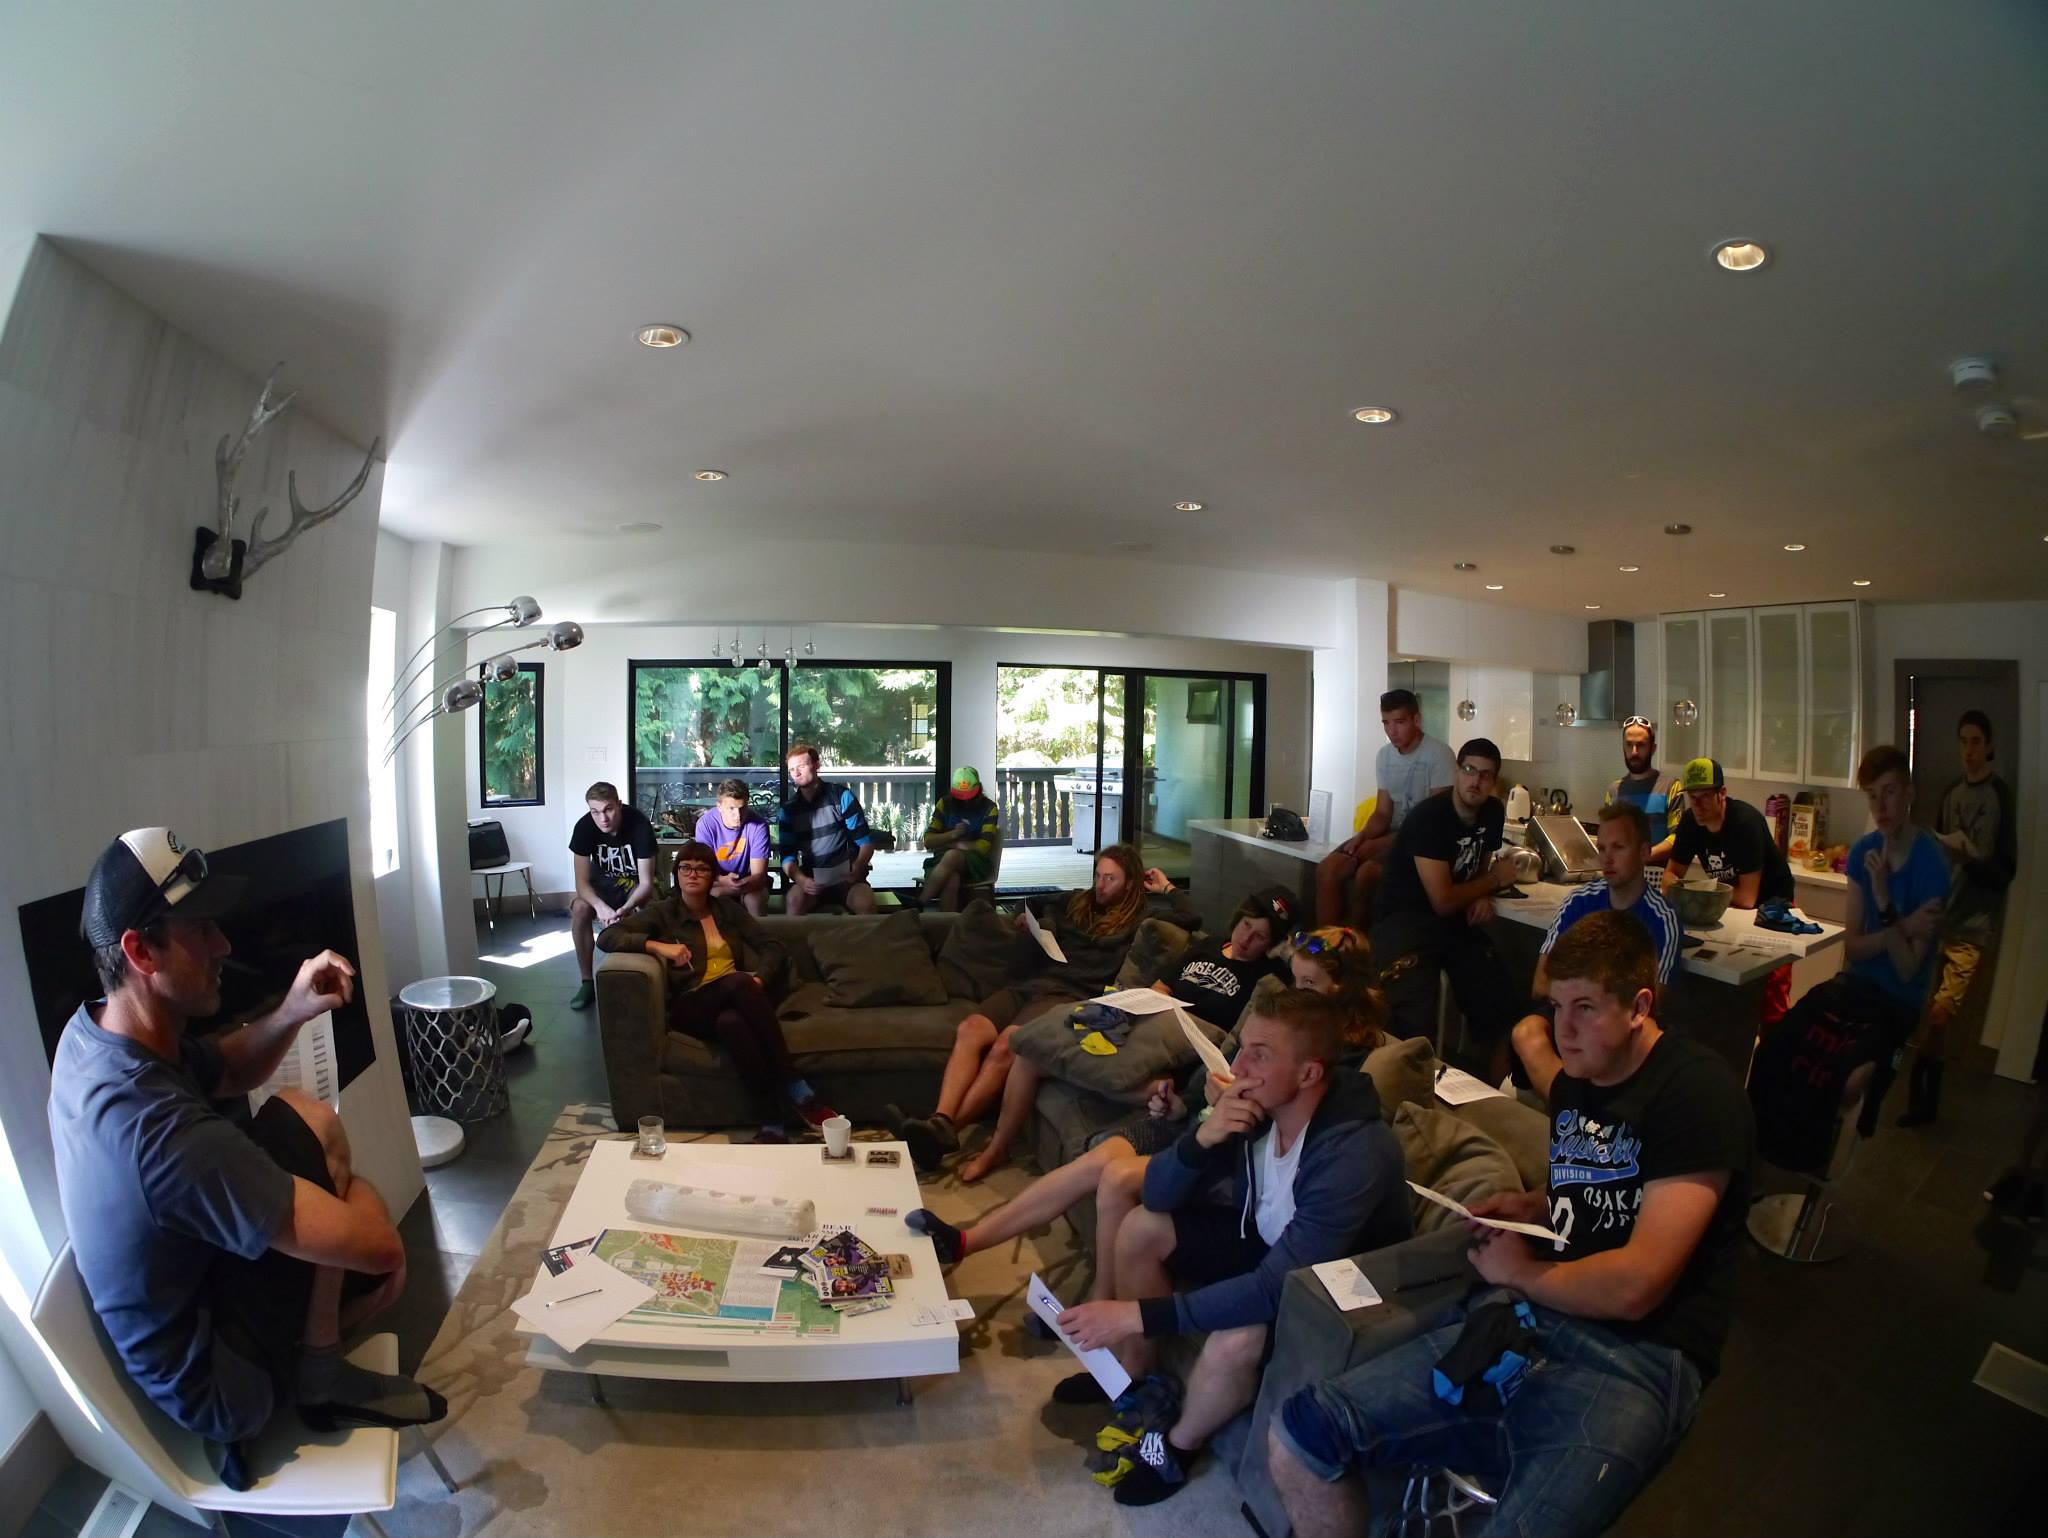 Coaches camp meet and greet at the chalet